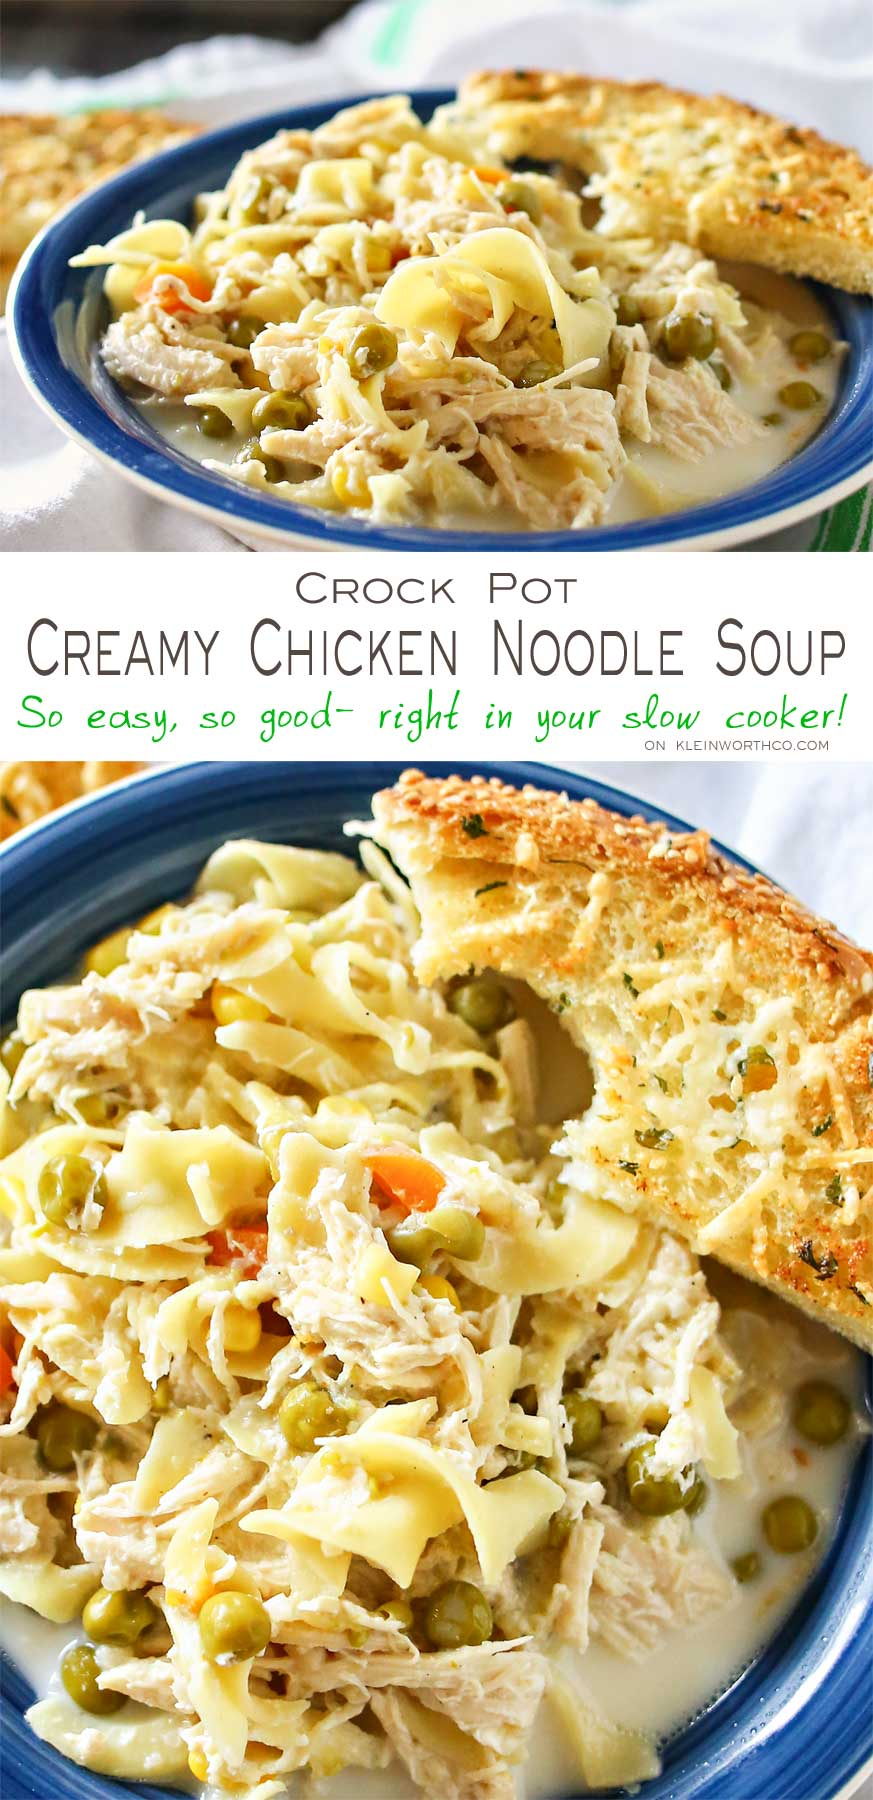 Easy family dinner ideas like this simple crock pot Creamy Chicken Noodle Soup quickly becomes a dinner time favorite. Just toss it all in the slow cooker & dinner is done with little effort. But oh man is it delicious! Absolutely the perfect easy chicken recipe! Don't miss my tips for speeding up the prep process too!